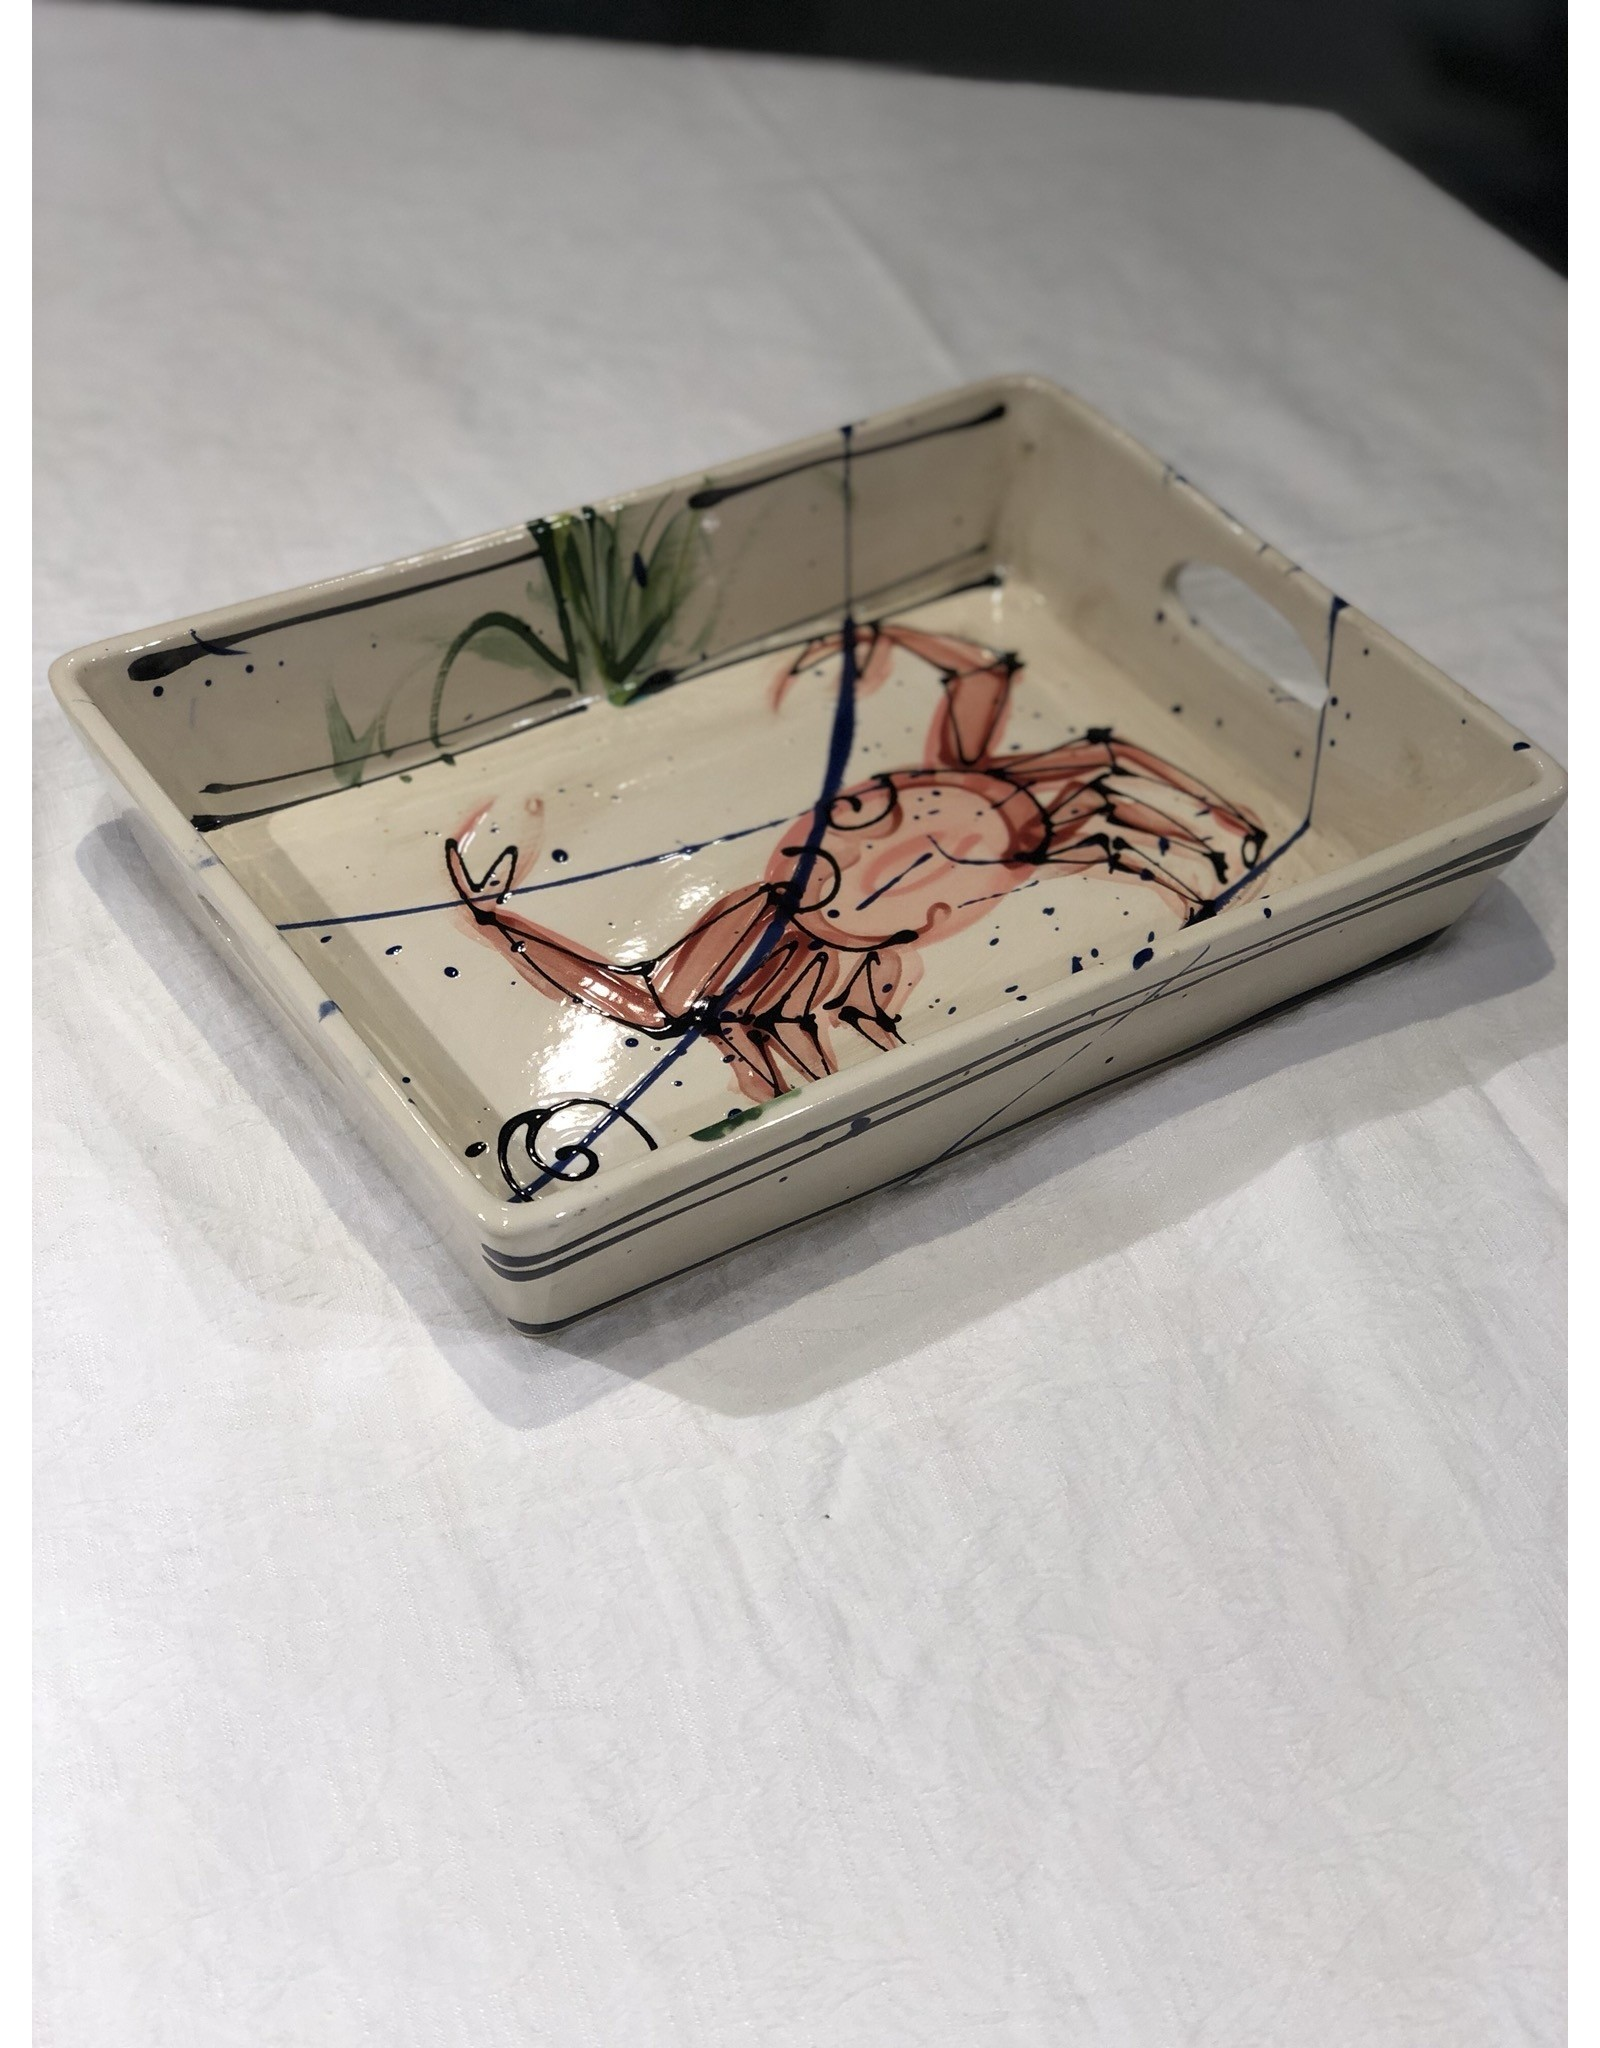 Donna Toohey Cut-Out Tray | Donna Toohey